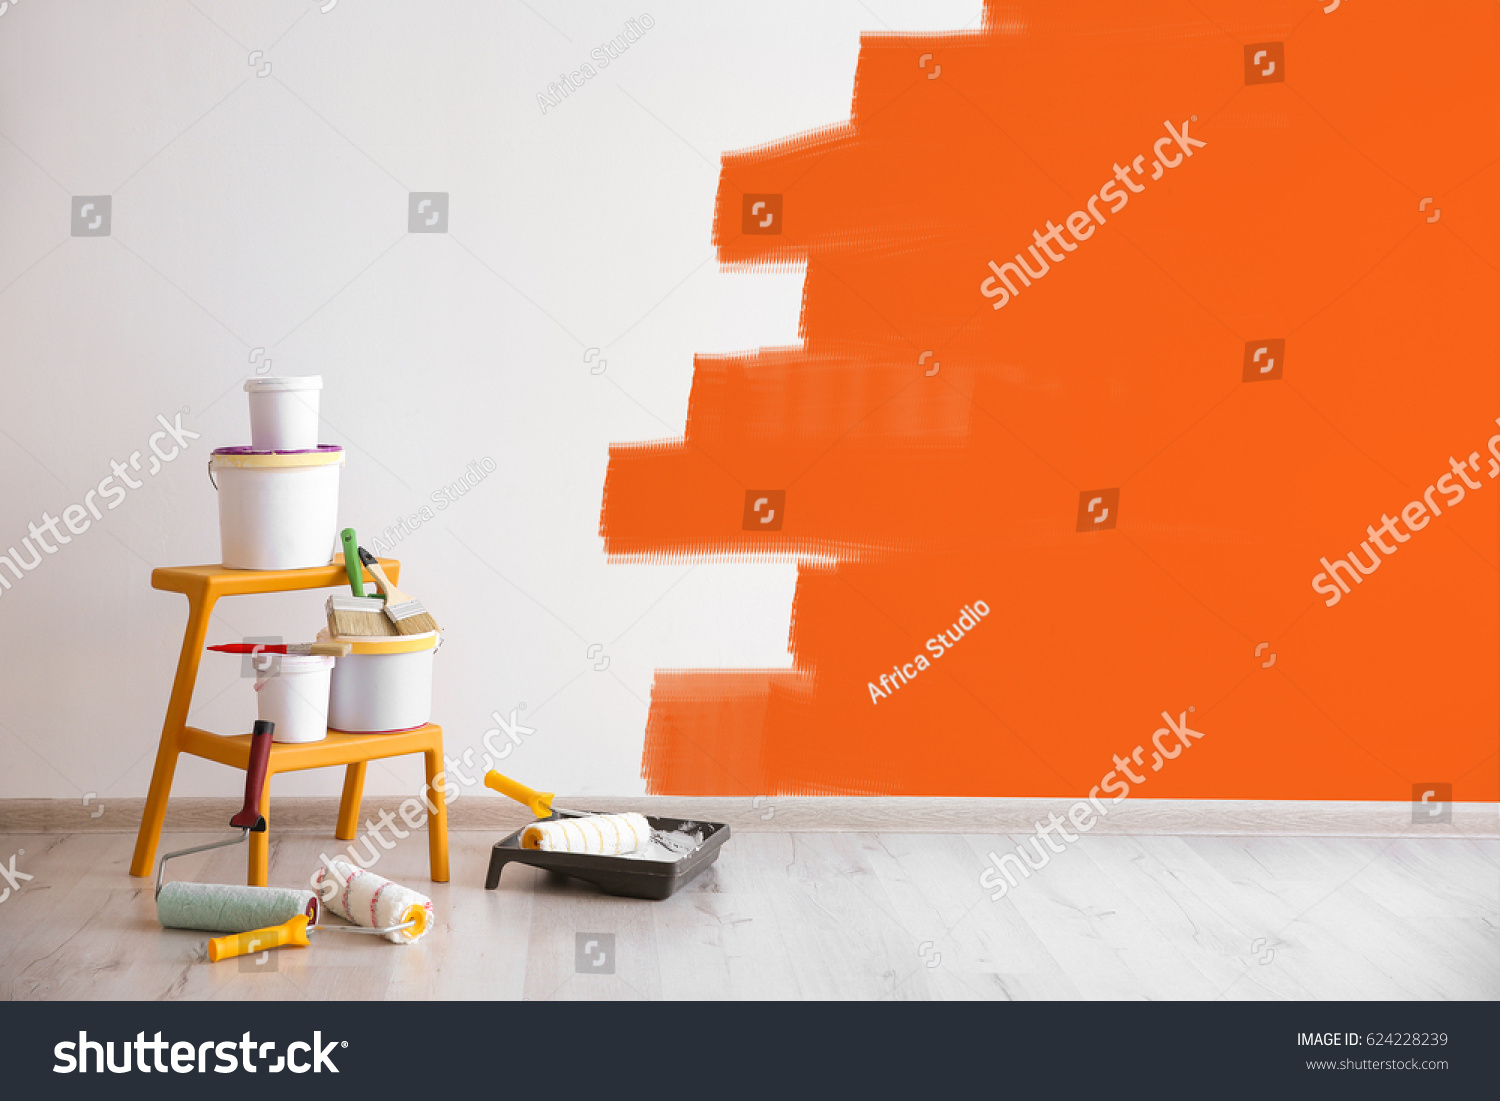 Set of tools for painting wall at home #624228239